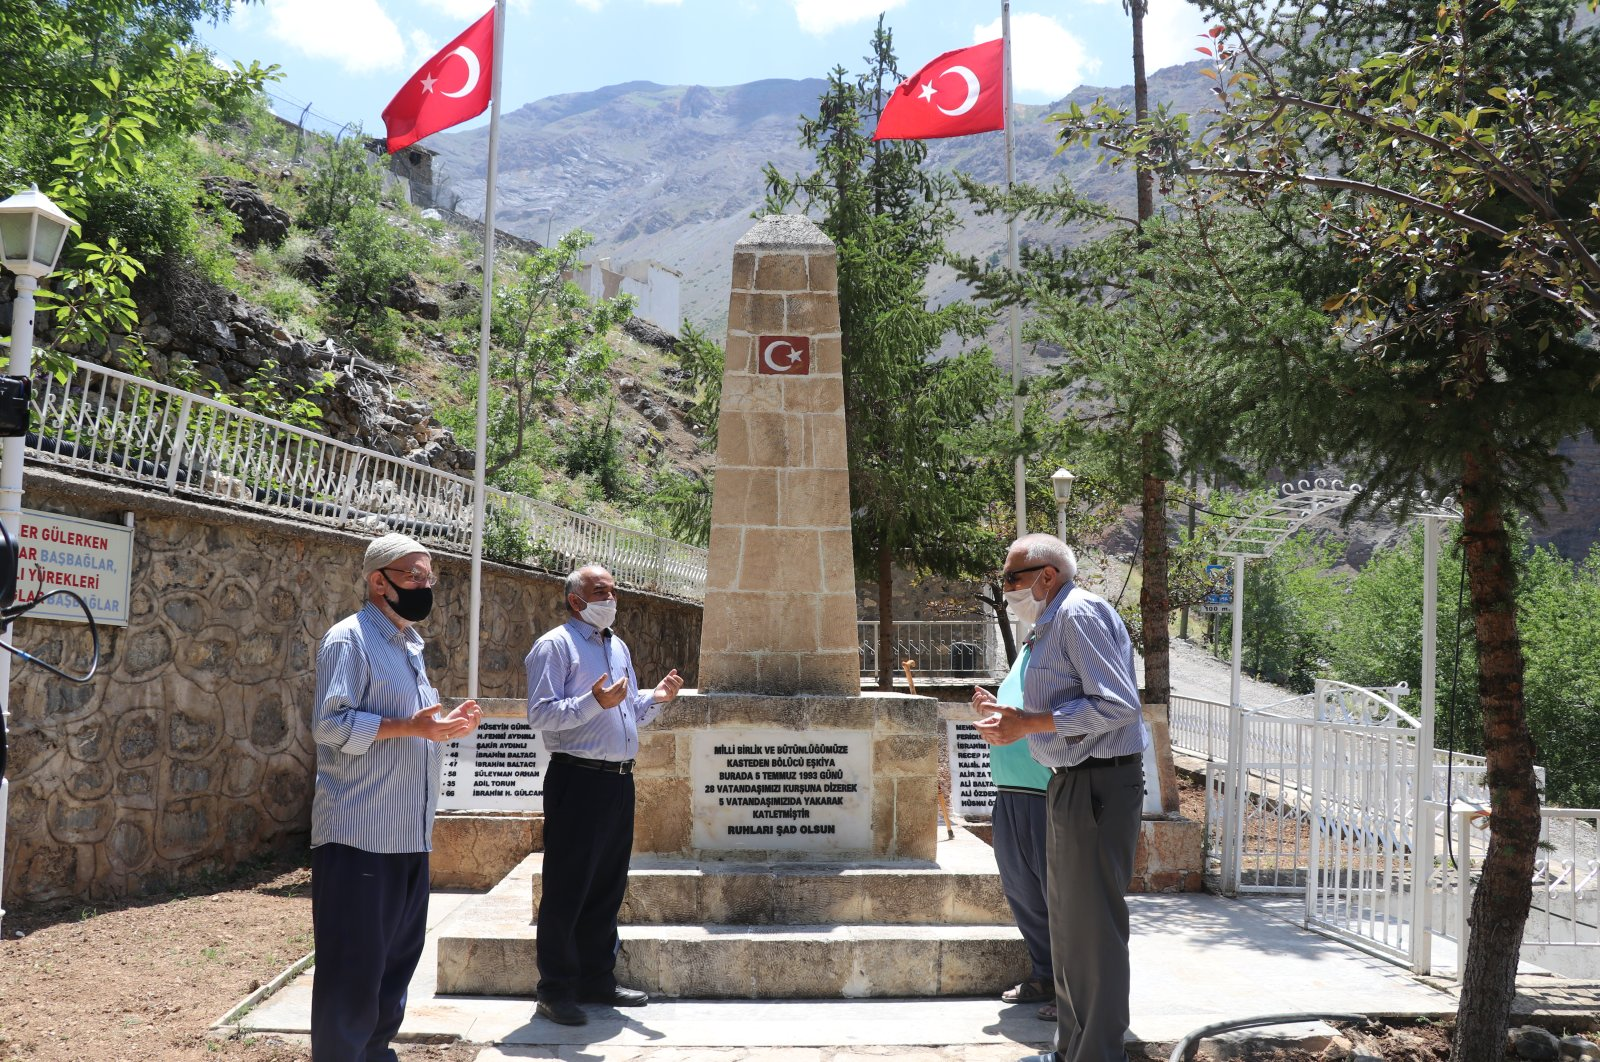 Villagers pray at a monument dedicated to the victims of a terrorist attack in the village of Başbağlar, Erzincan, Turkey, July 3, 2020. (AA Photo)